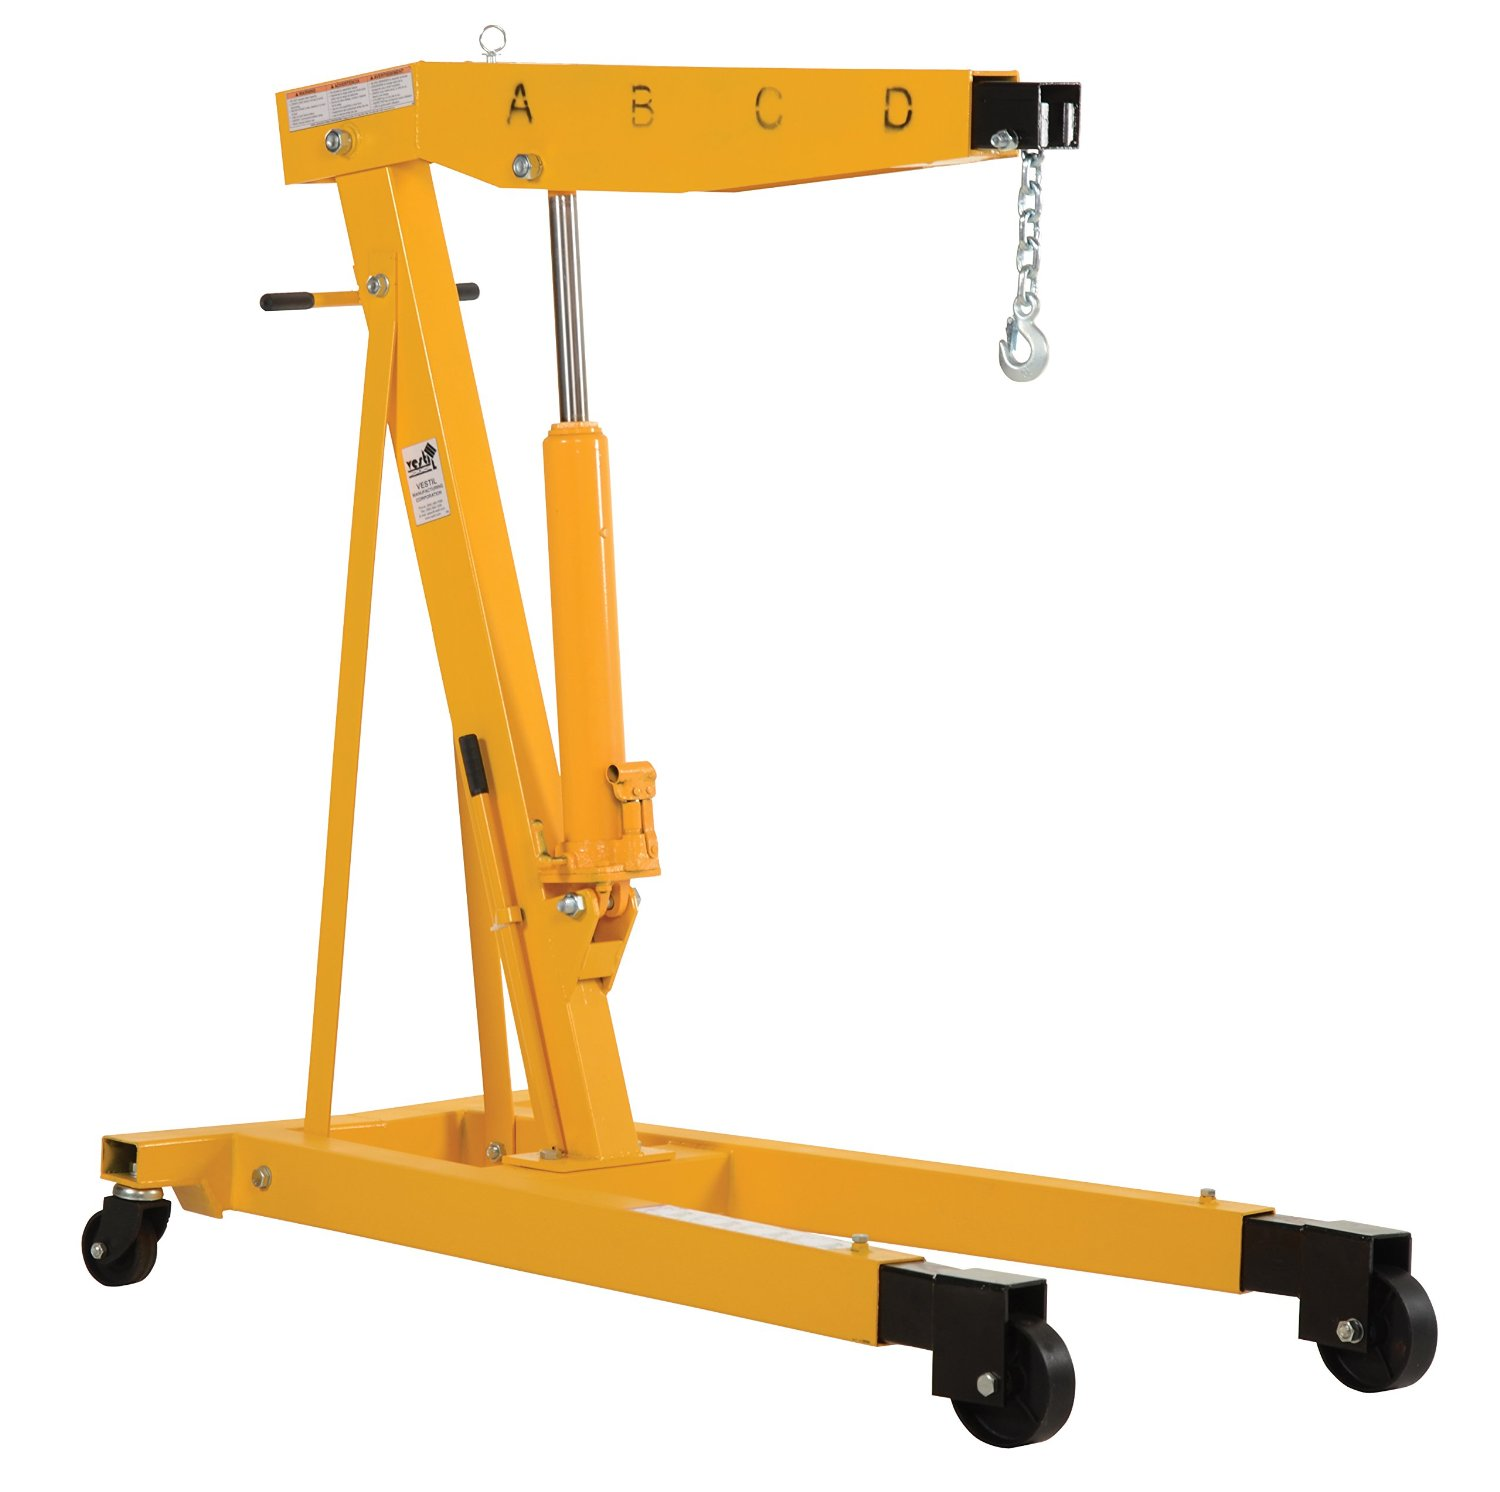 Vestil Ehn 60 T Engine Hoist Review Knockoutengine